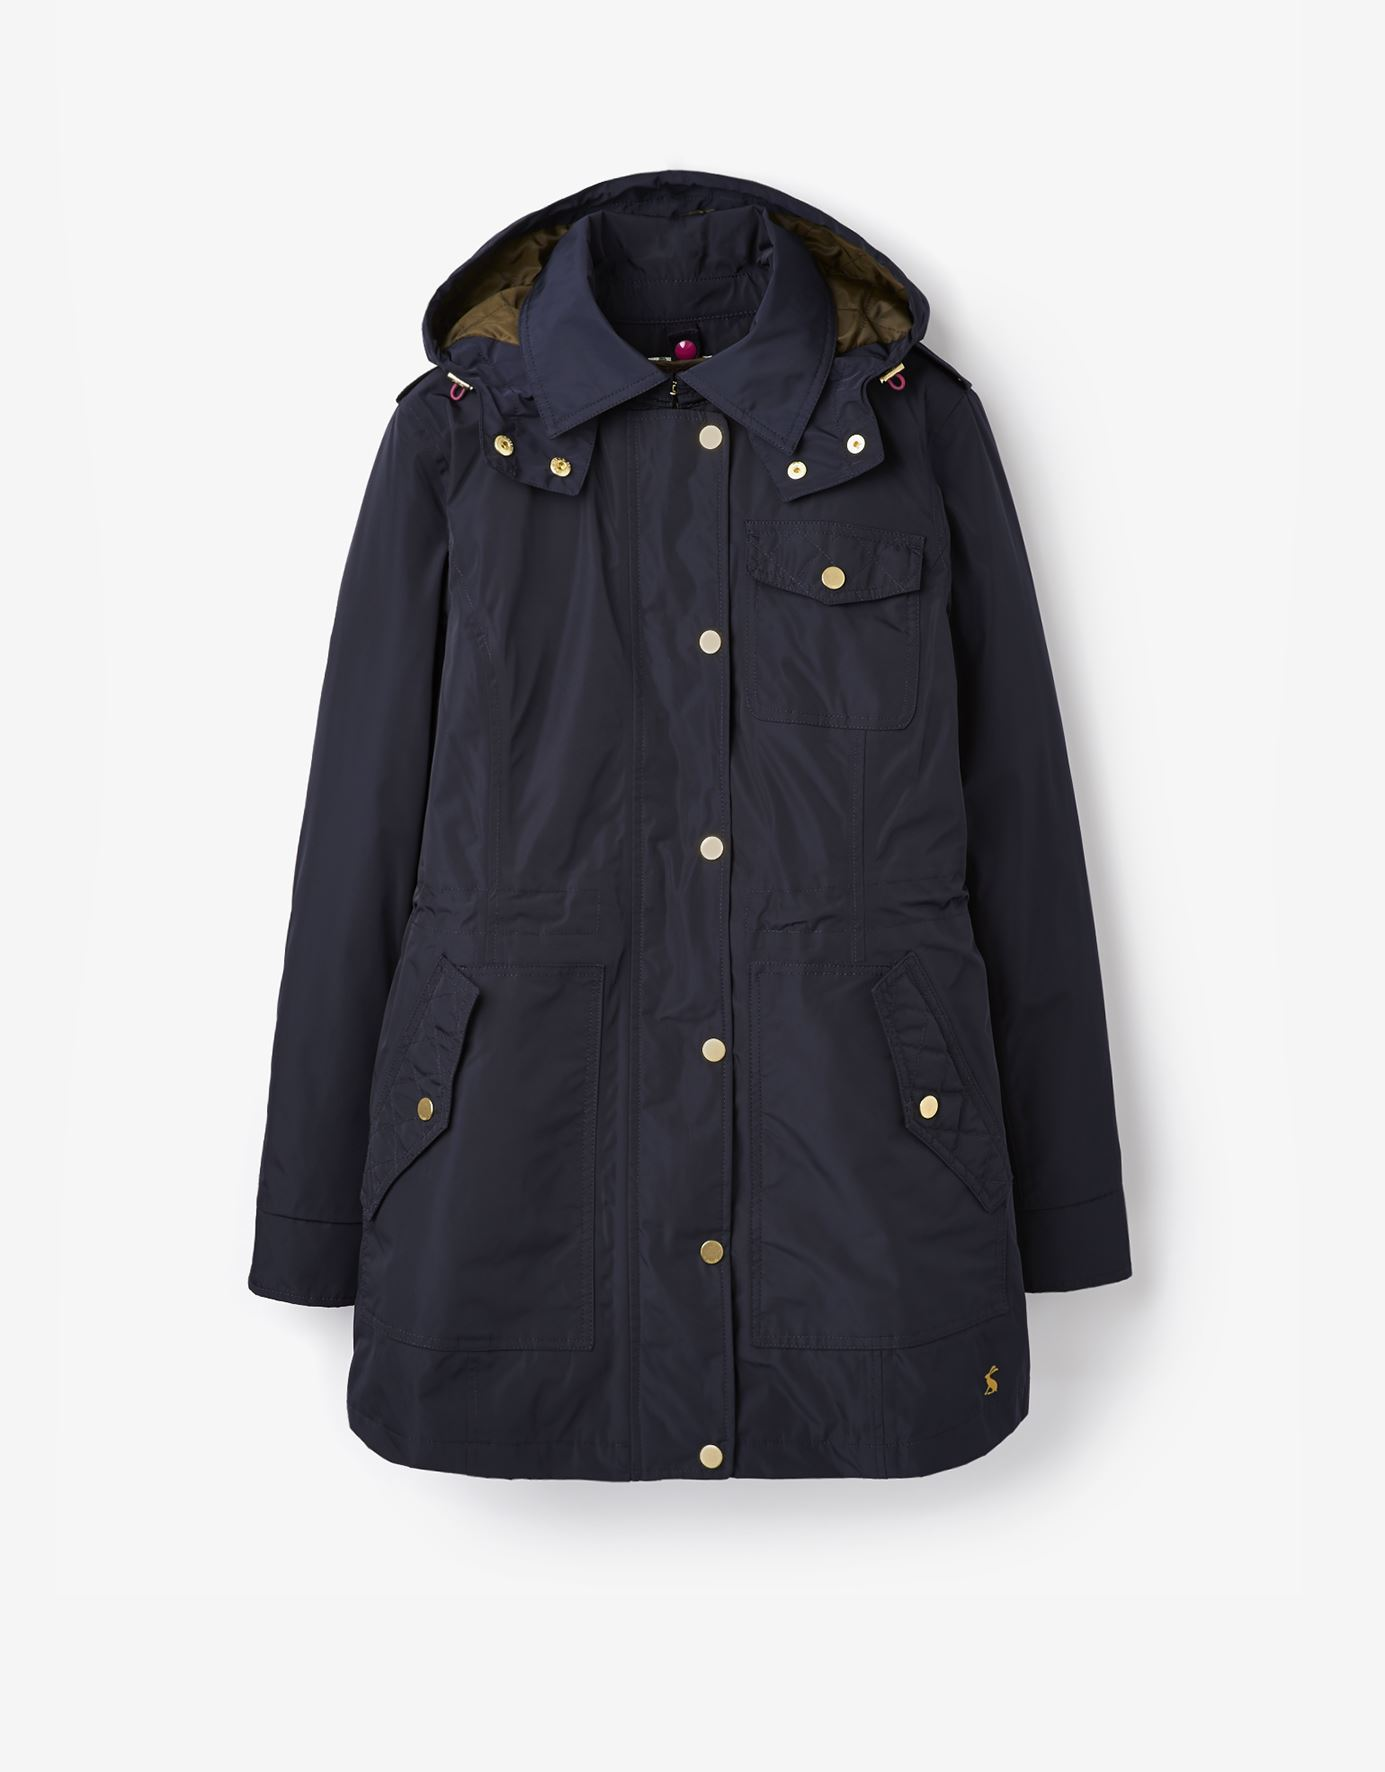 Joules Winchester Womens 3 in 1 Jacket AW 2015 | eBay